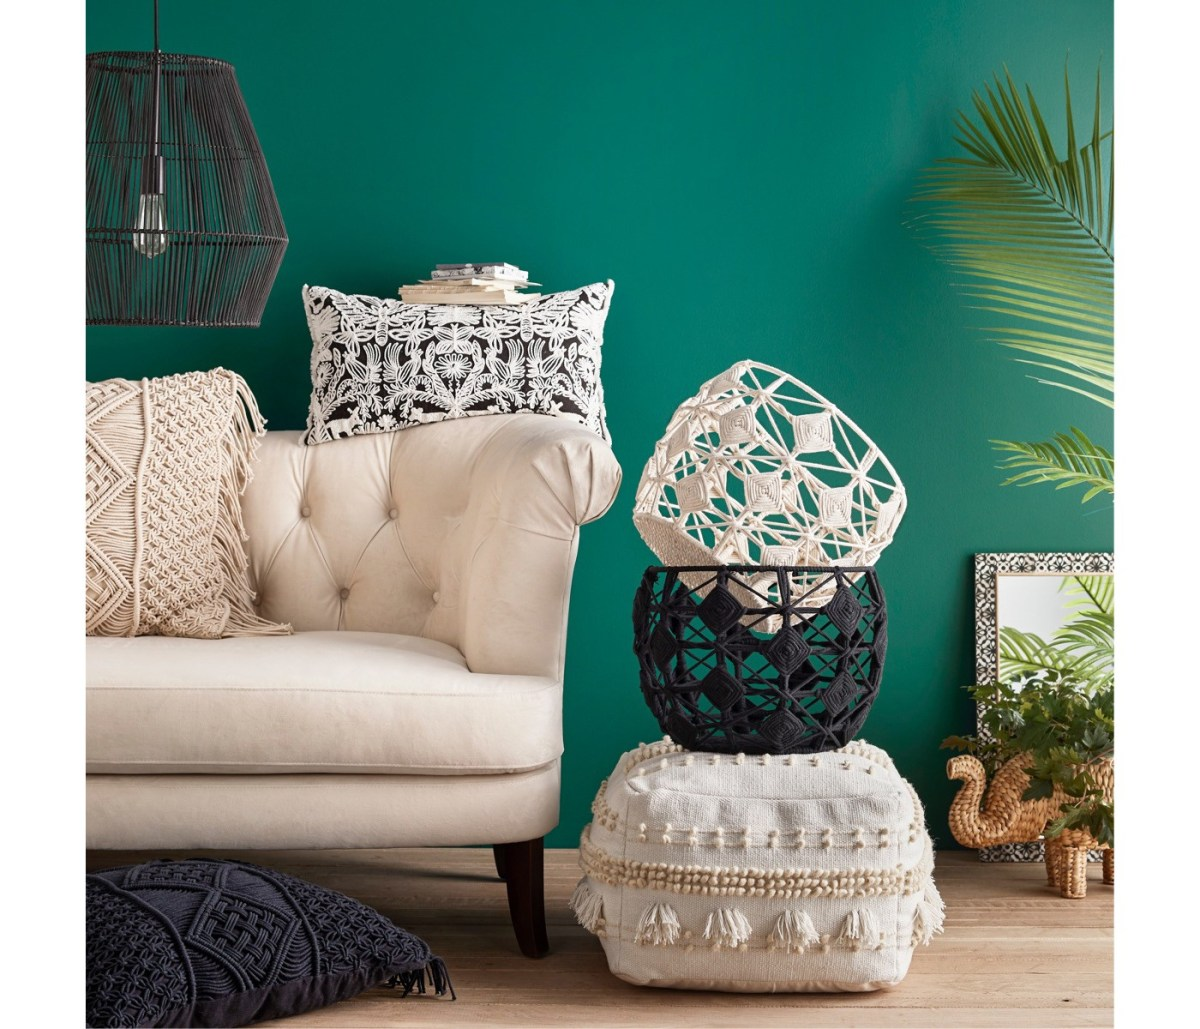 Target's One-Day Sale: Top Home Decor Picks